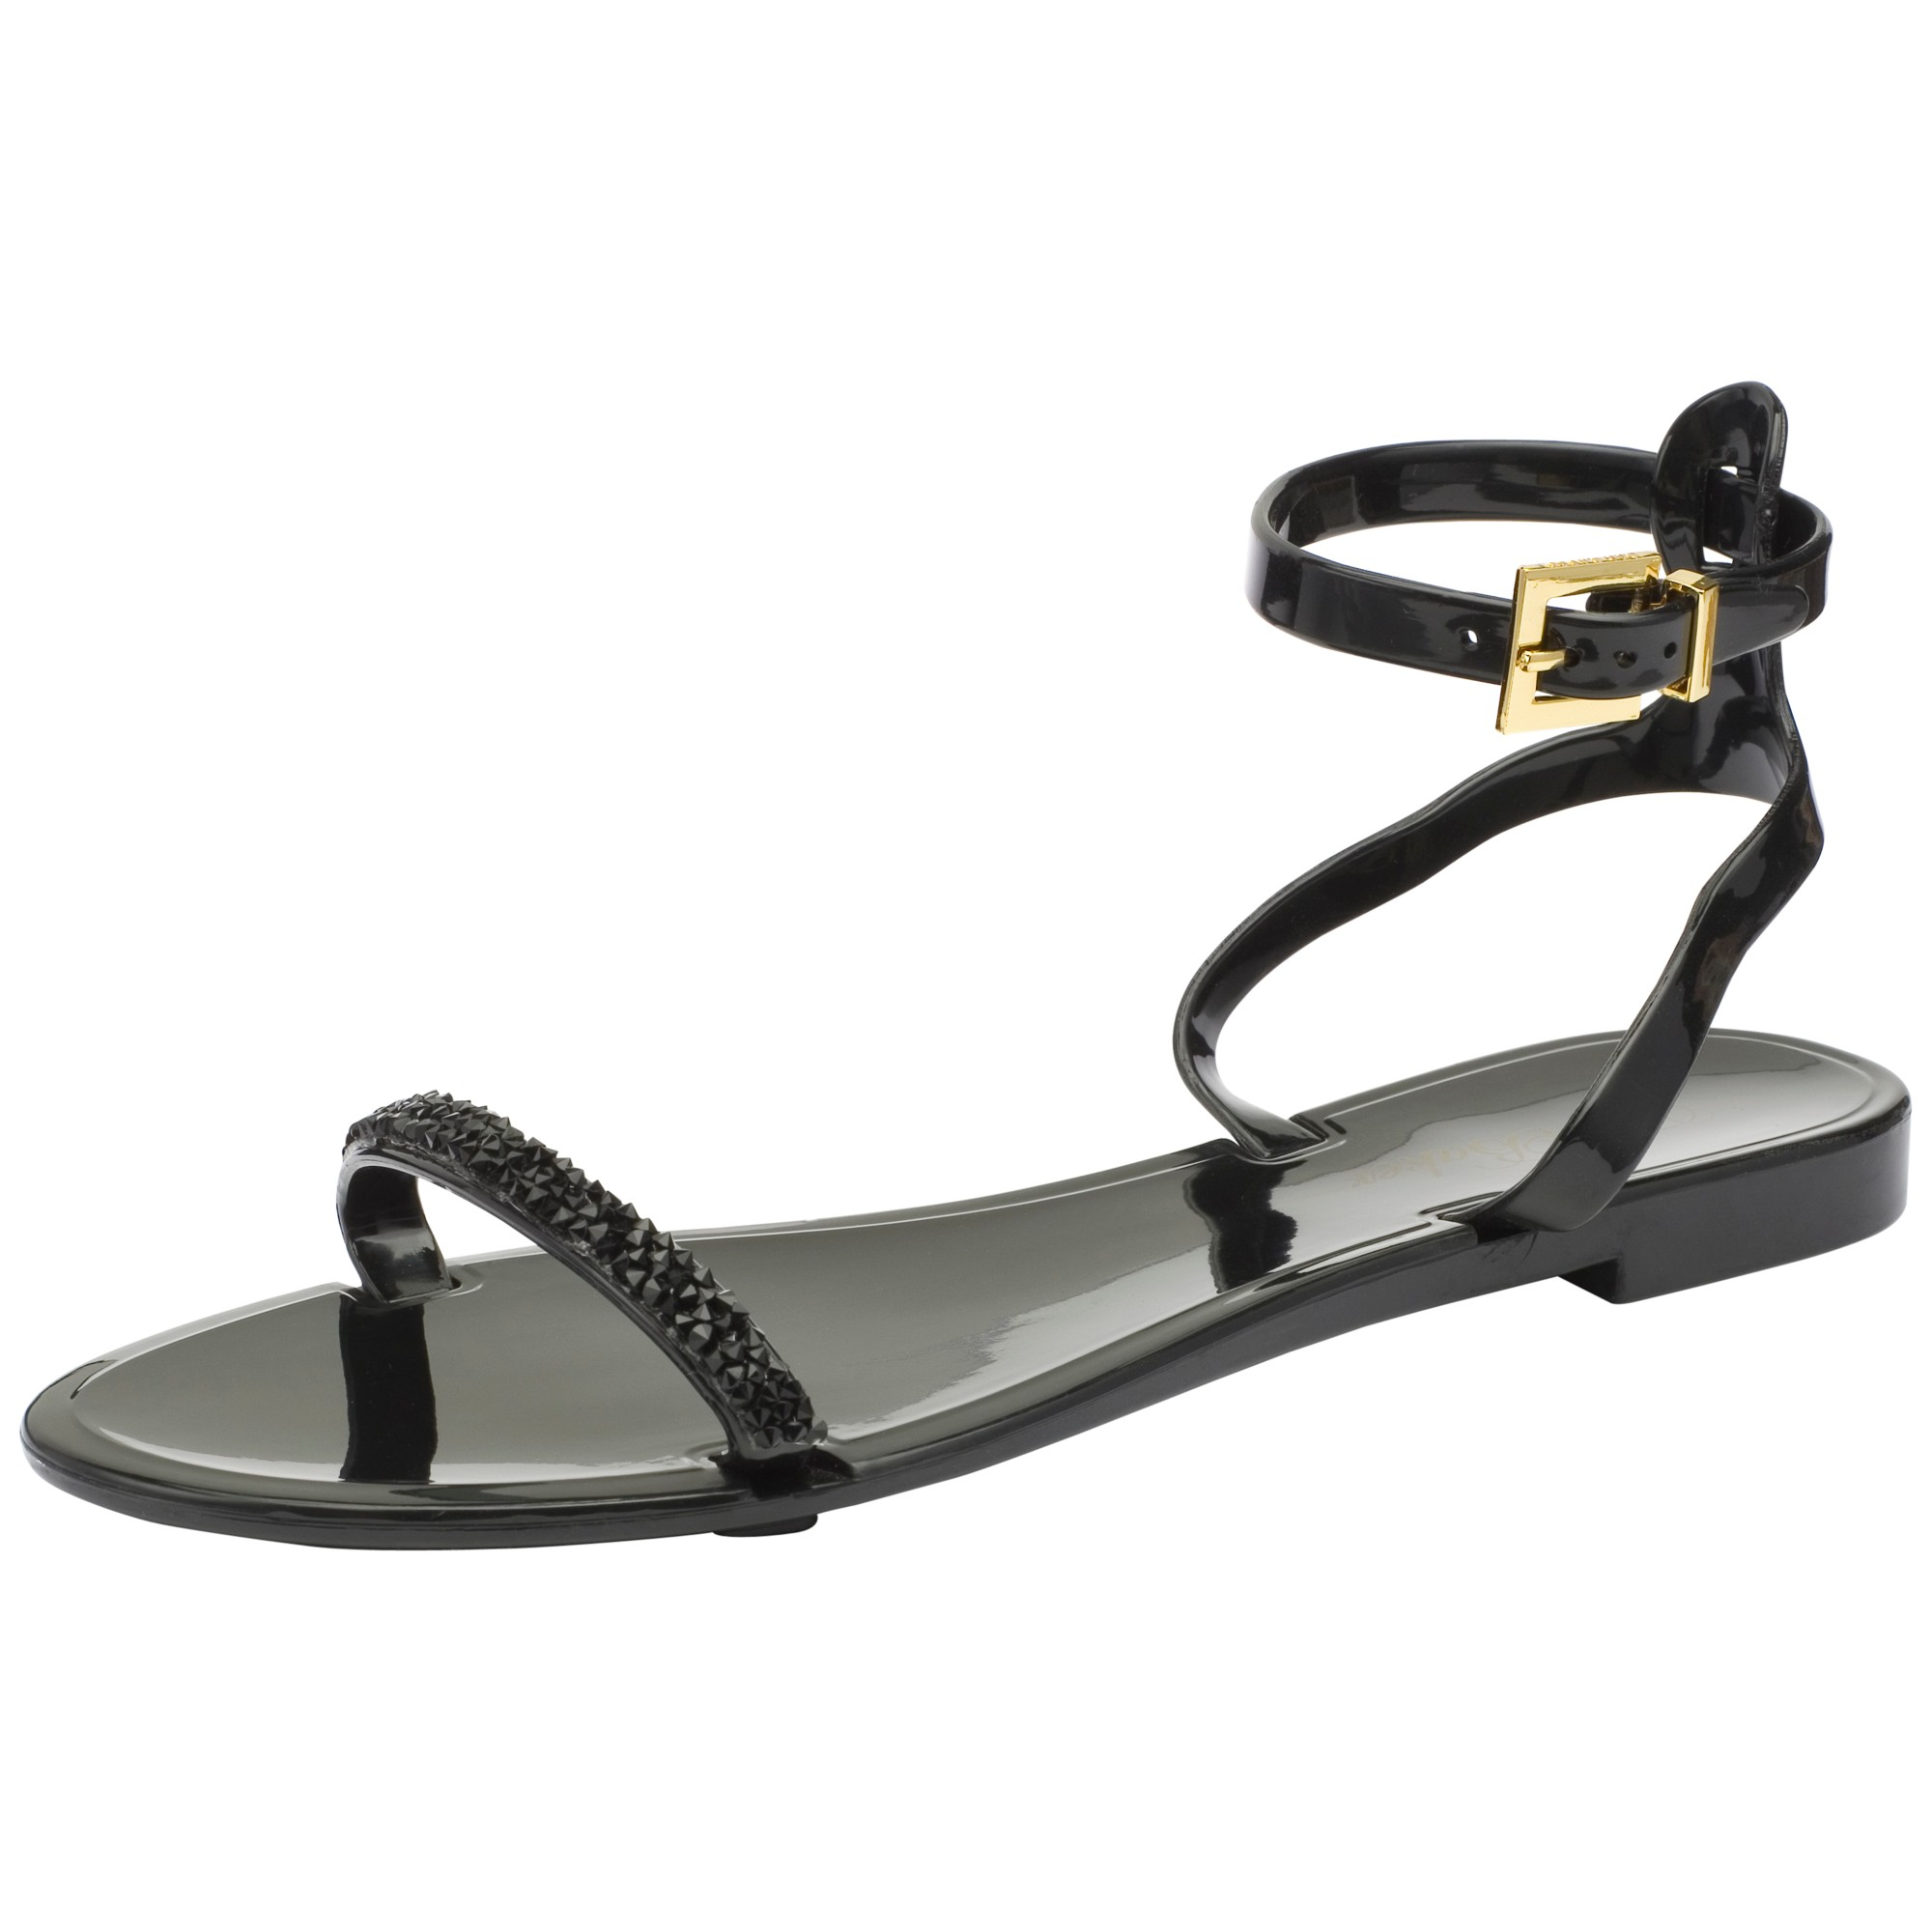 3403f1409ab3a1 ... Ted Baker Amorpha Ankle Strap Jelly Sandals in Black - Lyst exquisite  design 532d8 e6902  Sales Promotion Ted Baker Verona Jelly T-Bar Sandals -  Canada ...